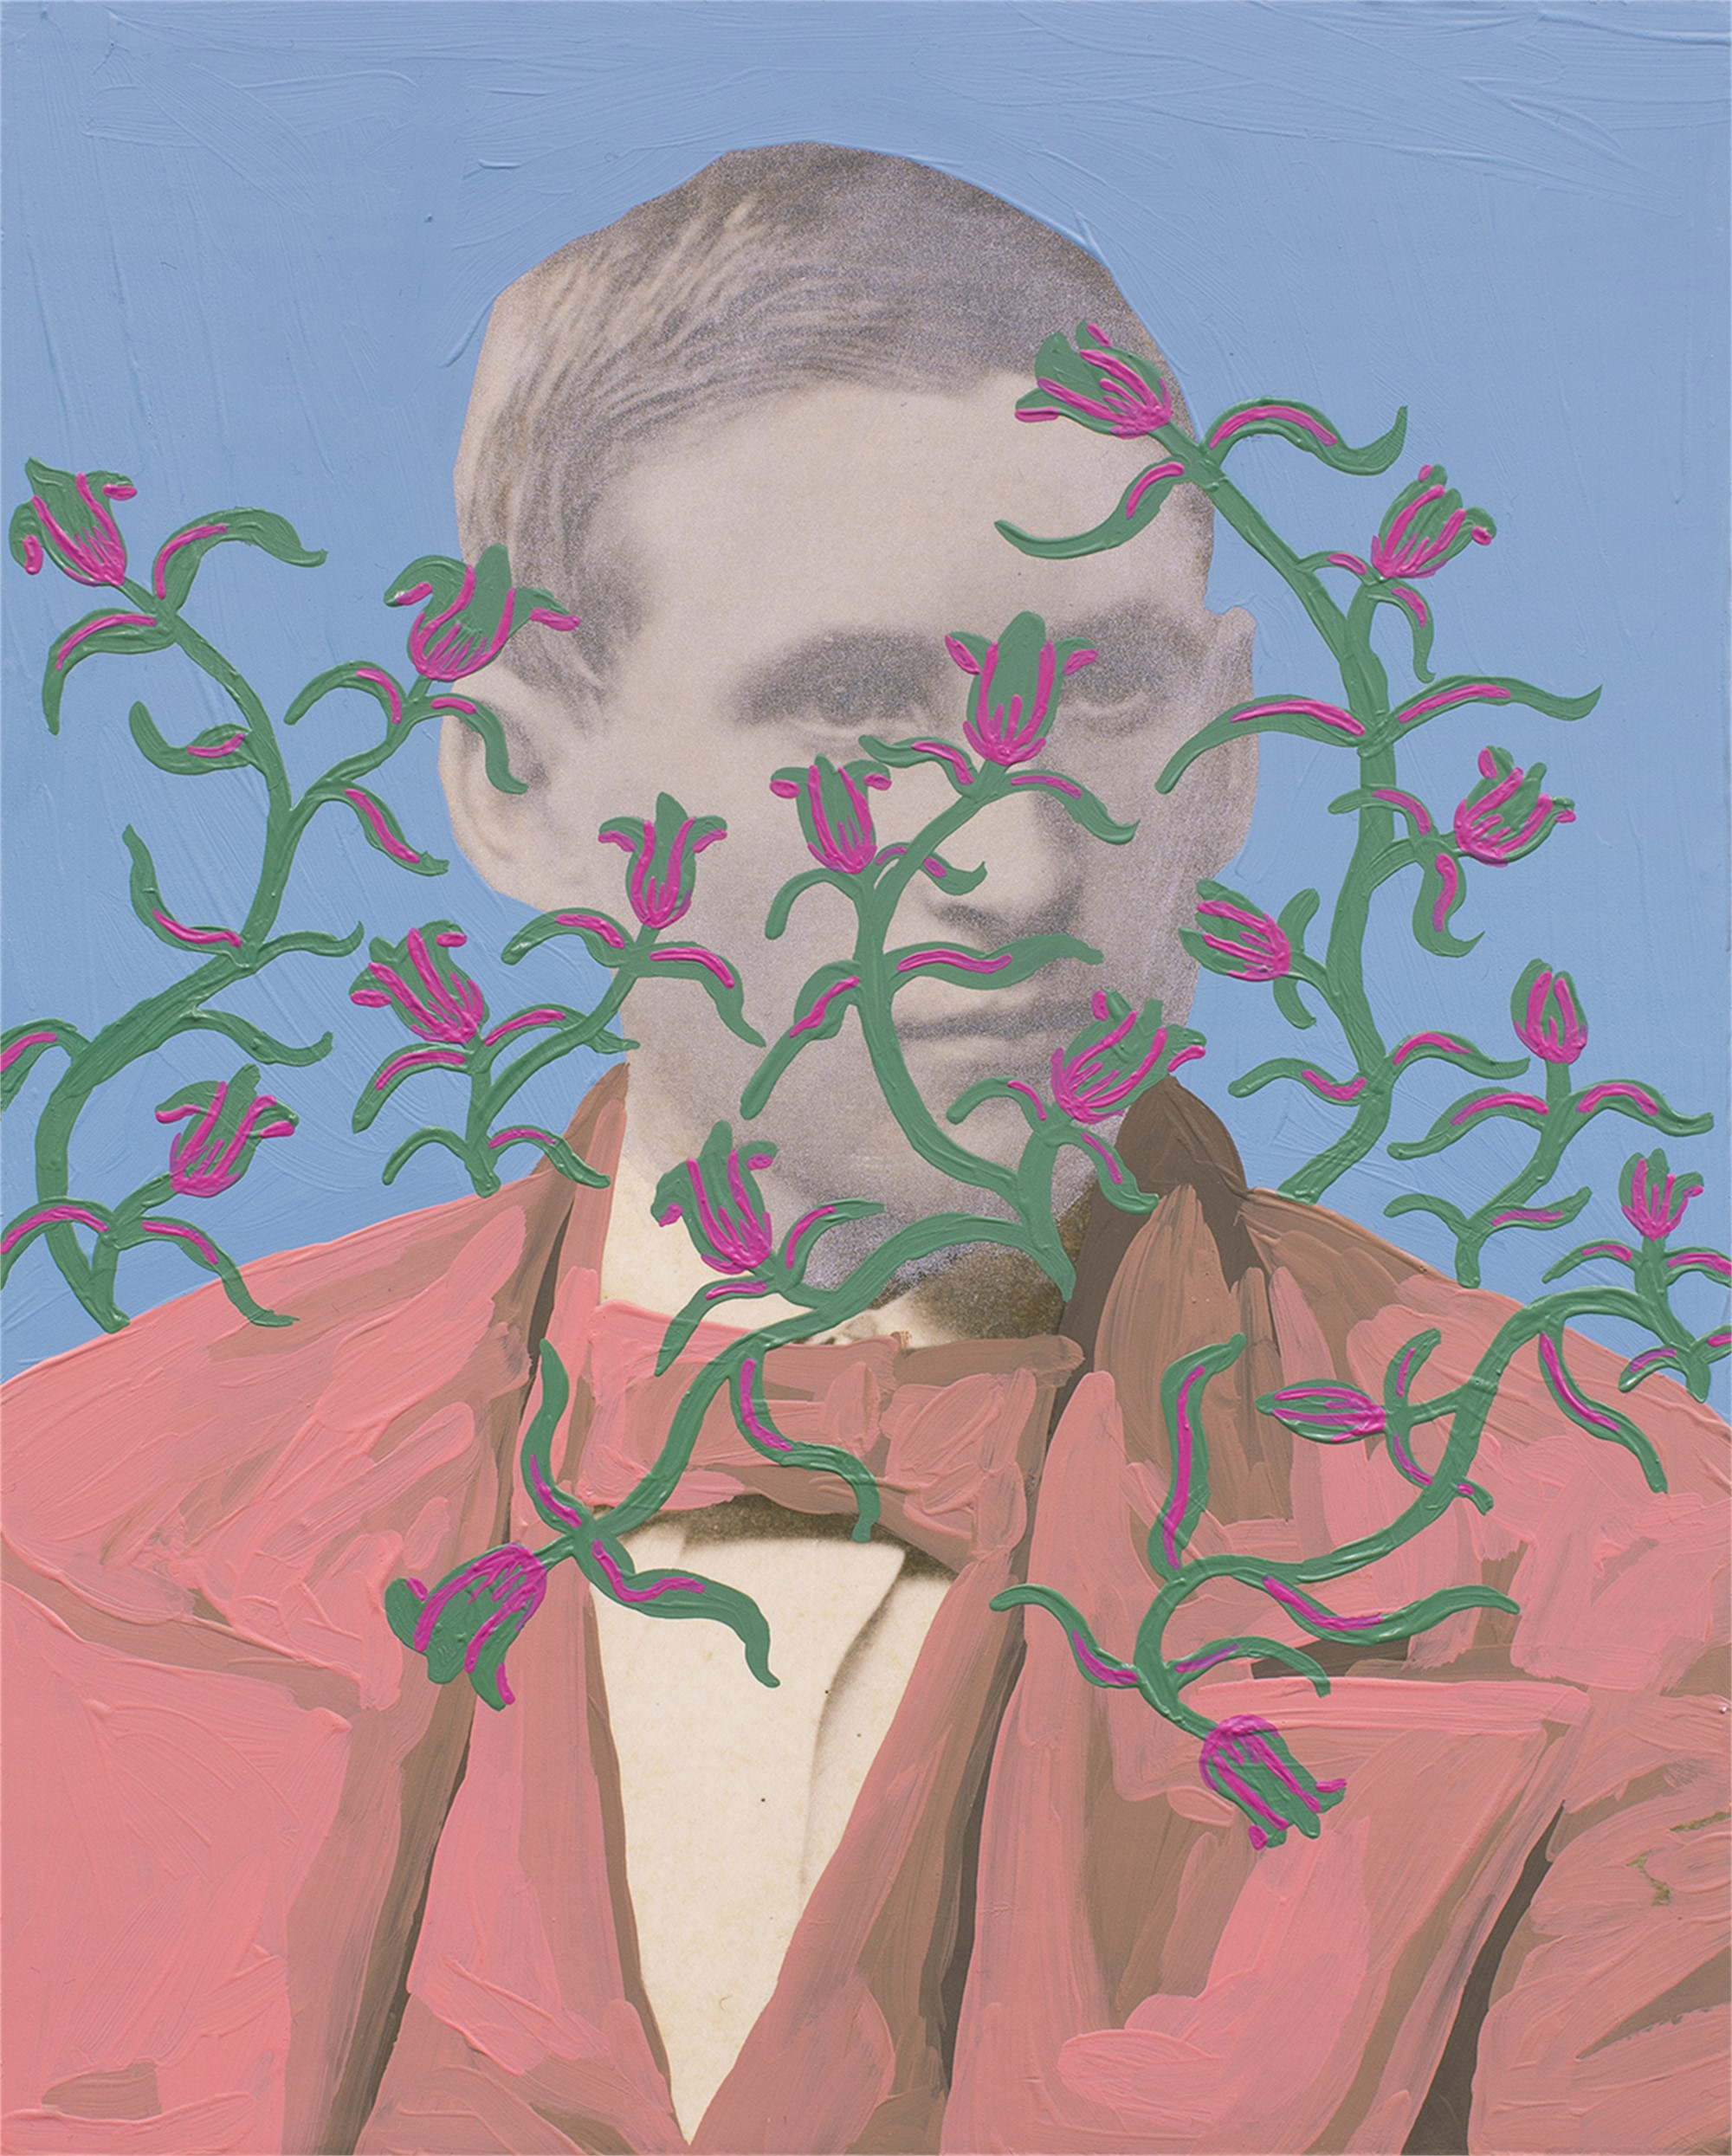 Untitled (Man with Silver Face and Green and Pink Pattern) by Daisy Patton